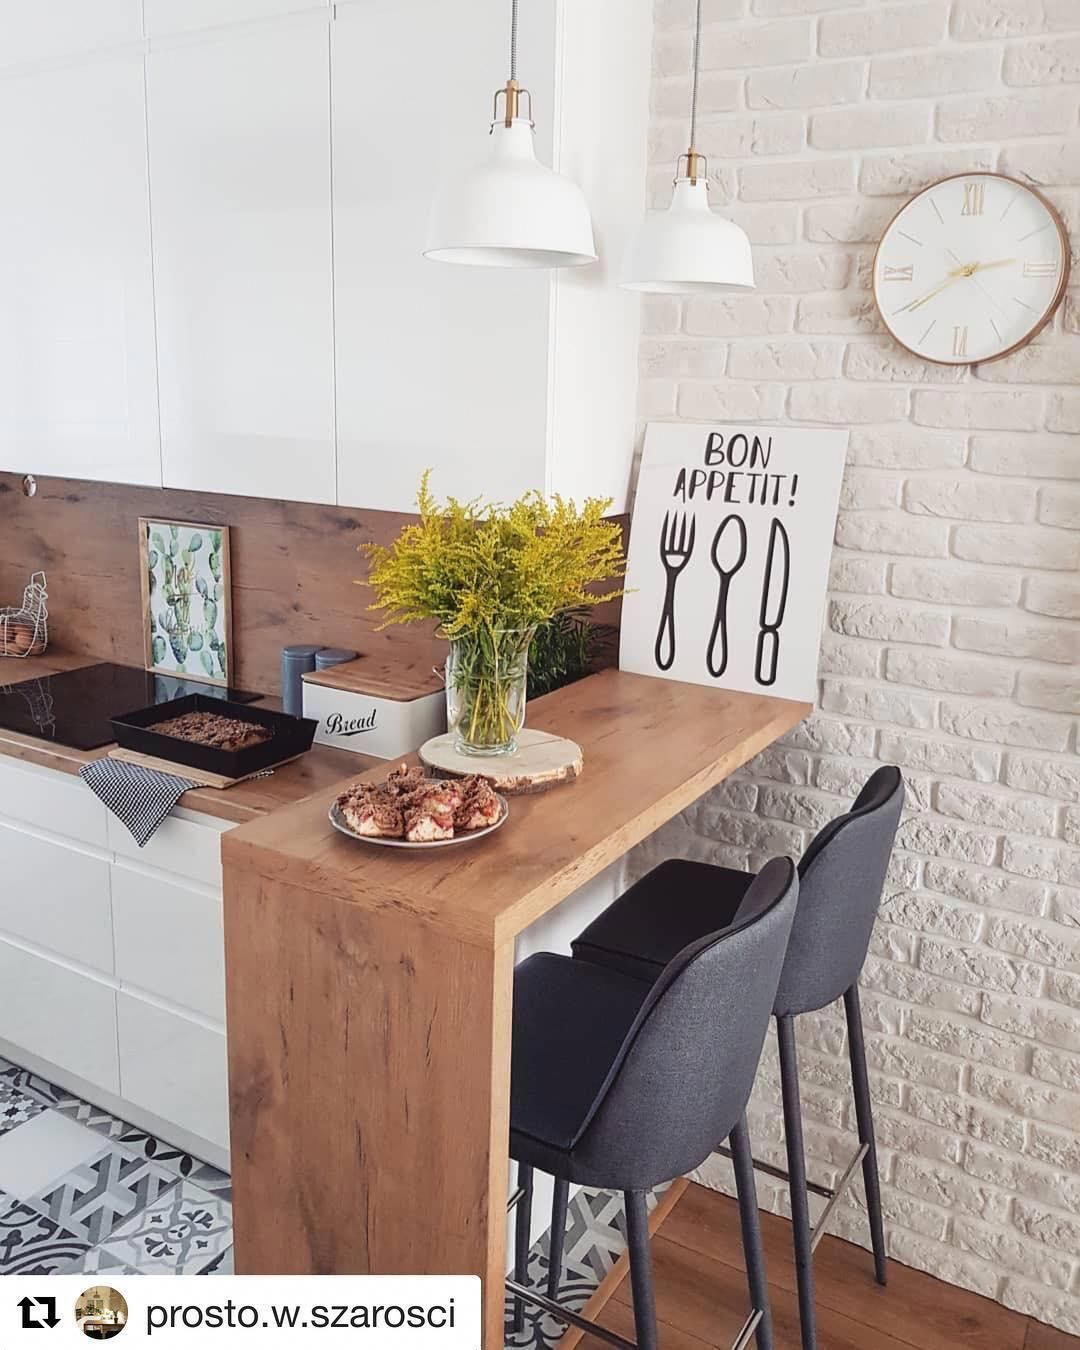 Photo of The 26 Greatest Small Kitchen Design Ideas for Your Tiny Space